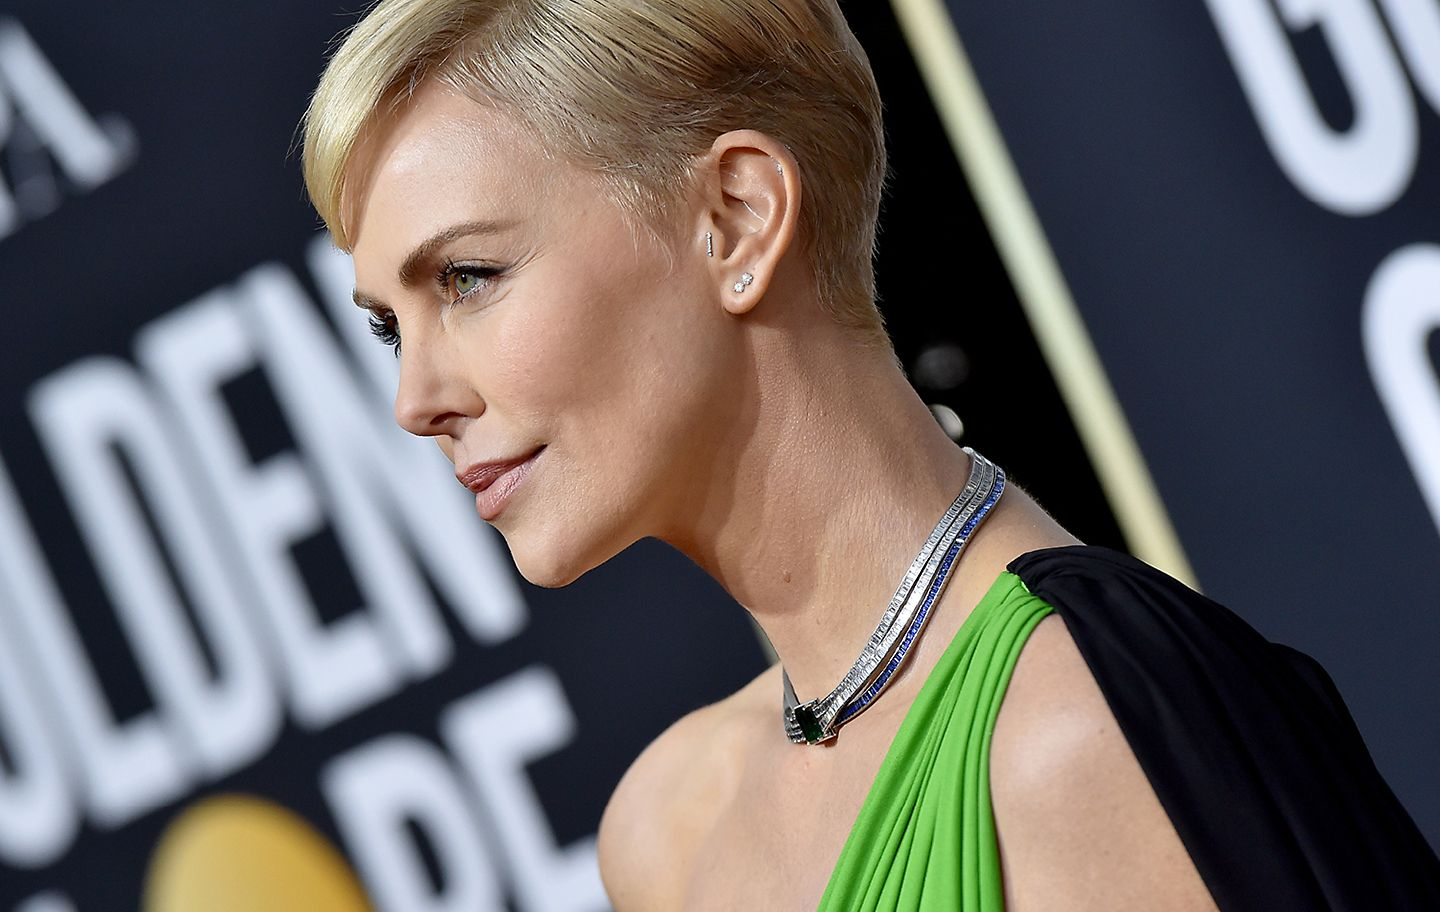 Charlize Theron in striking necklace was designed by Tiffany chief artistic officer Reed Krakoff